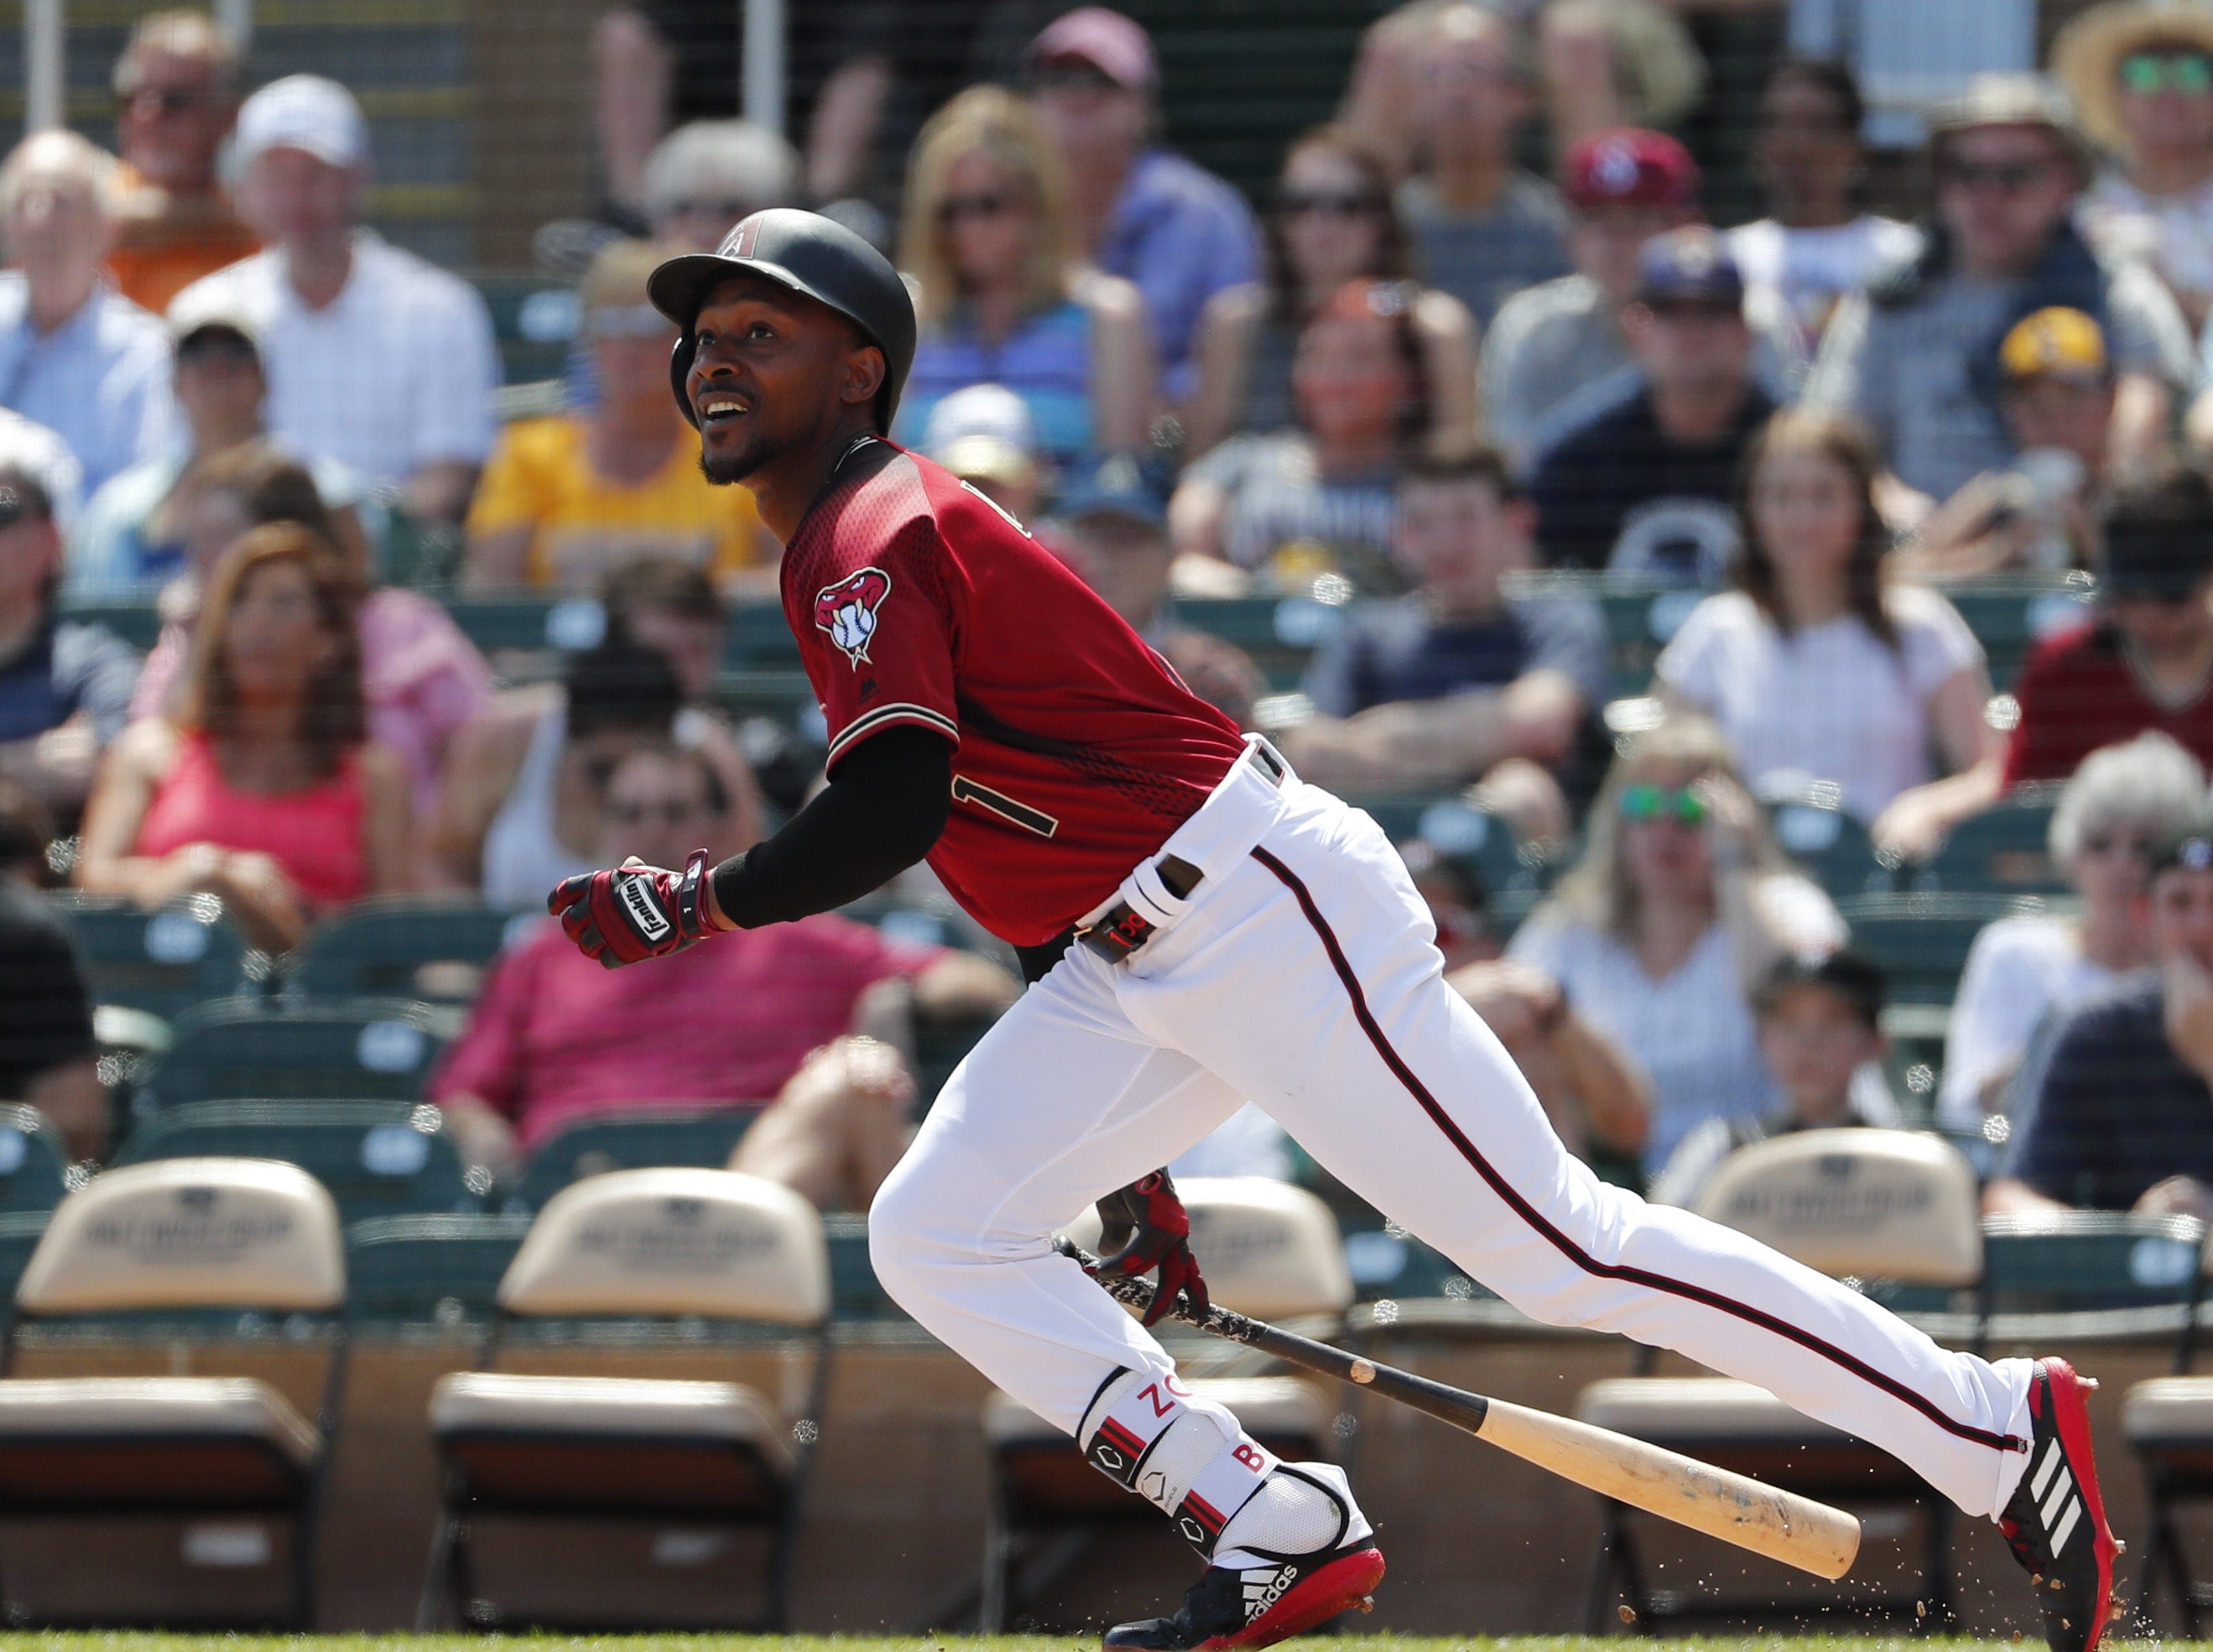 Arizona Diamondbacks center fielder Jarrod Dyson (1) bats against the Milwaukee Brewers during spring training at Salt River Fields at Talking Stick March 24, 2019.